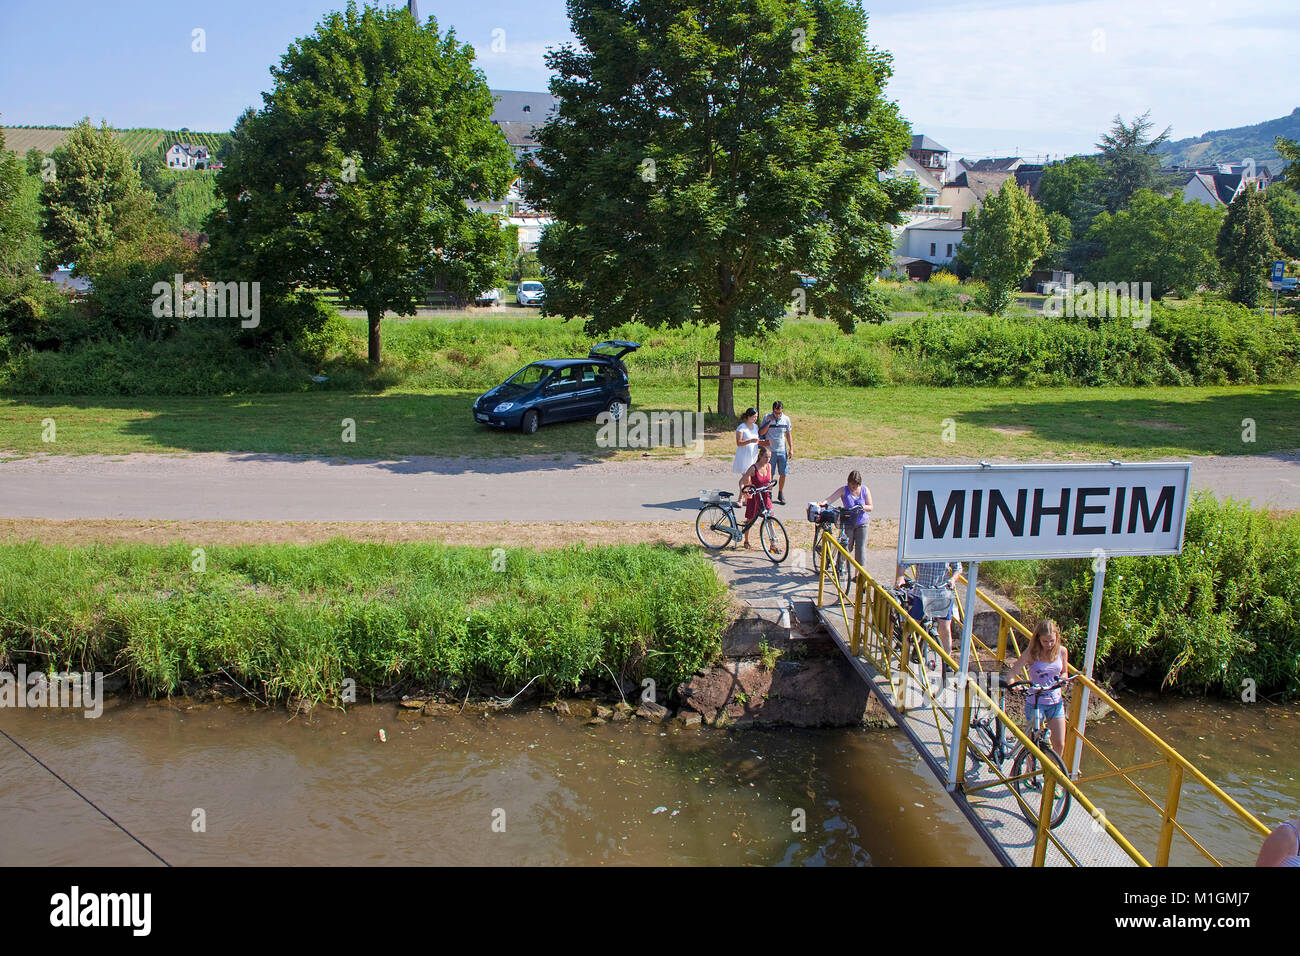 Cyclists boarding at landing stage for excursion ships,Minheim, Moselle river, Rhineland-Palatinate, Germany, Europe Stock Photo